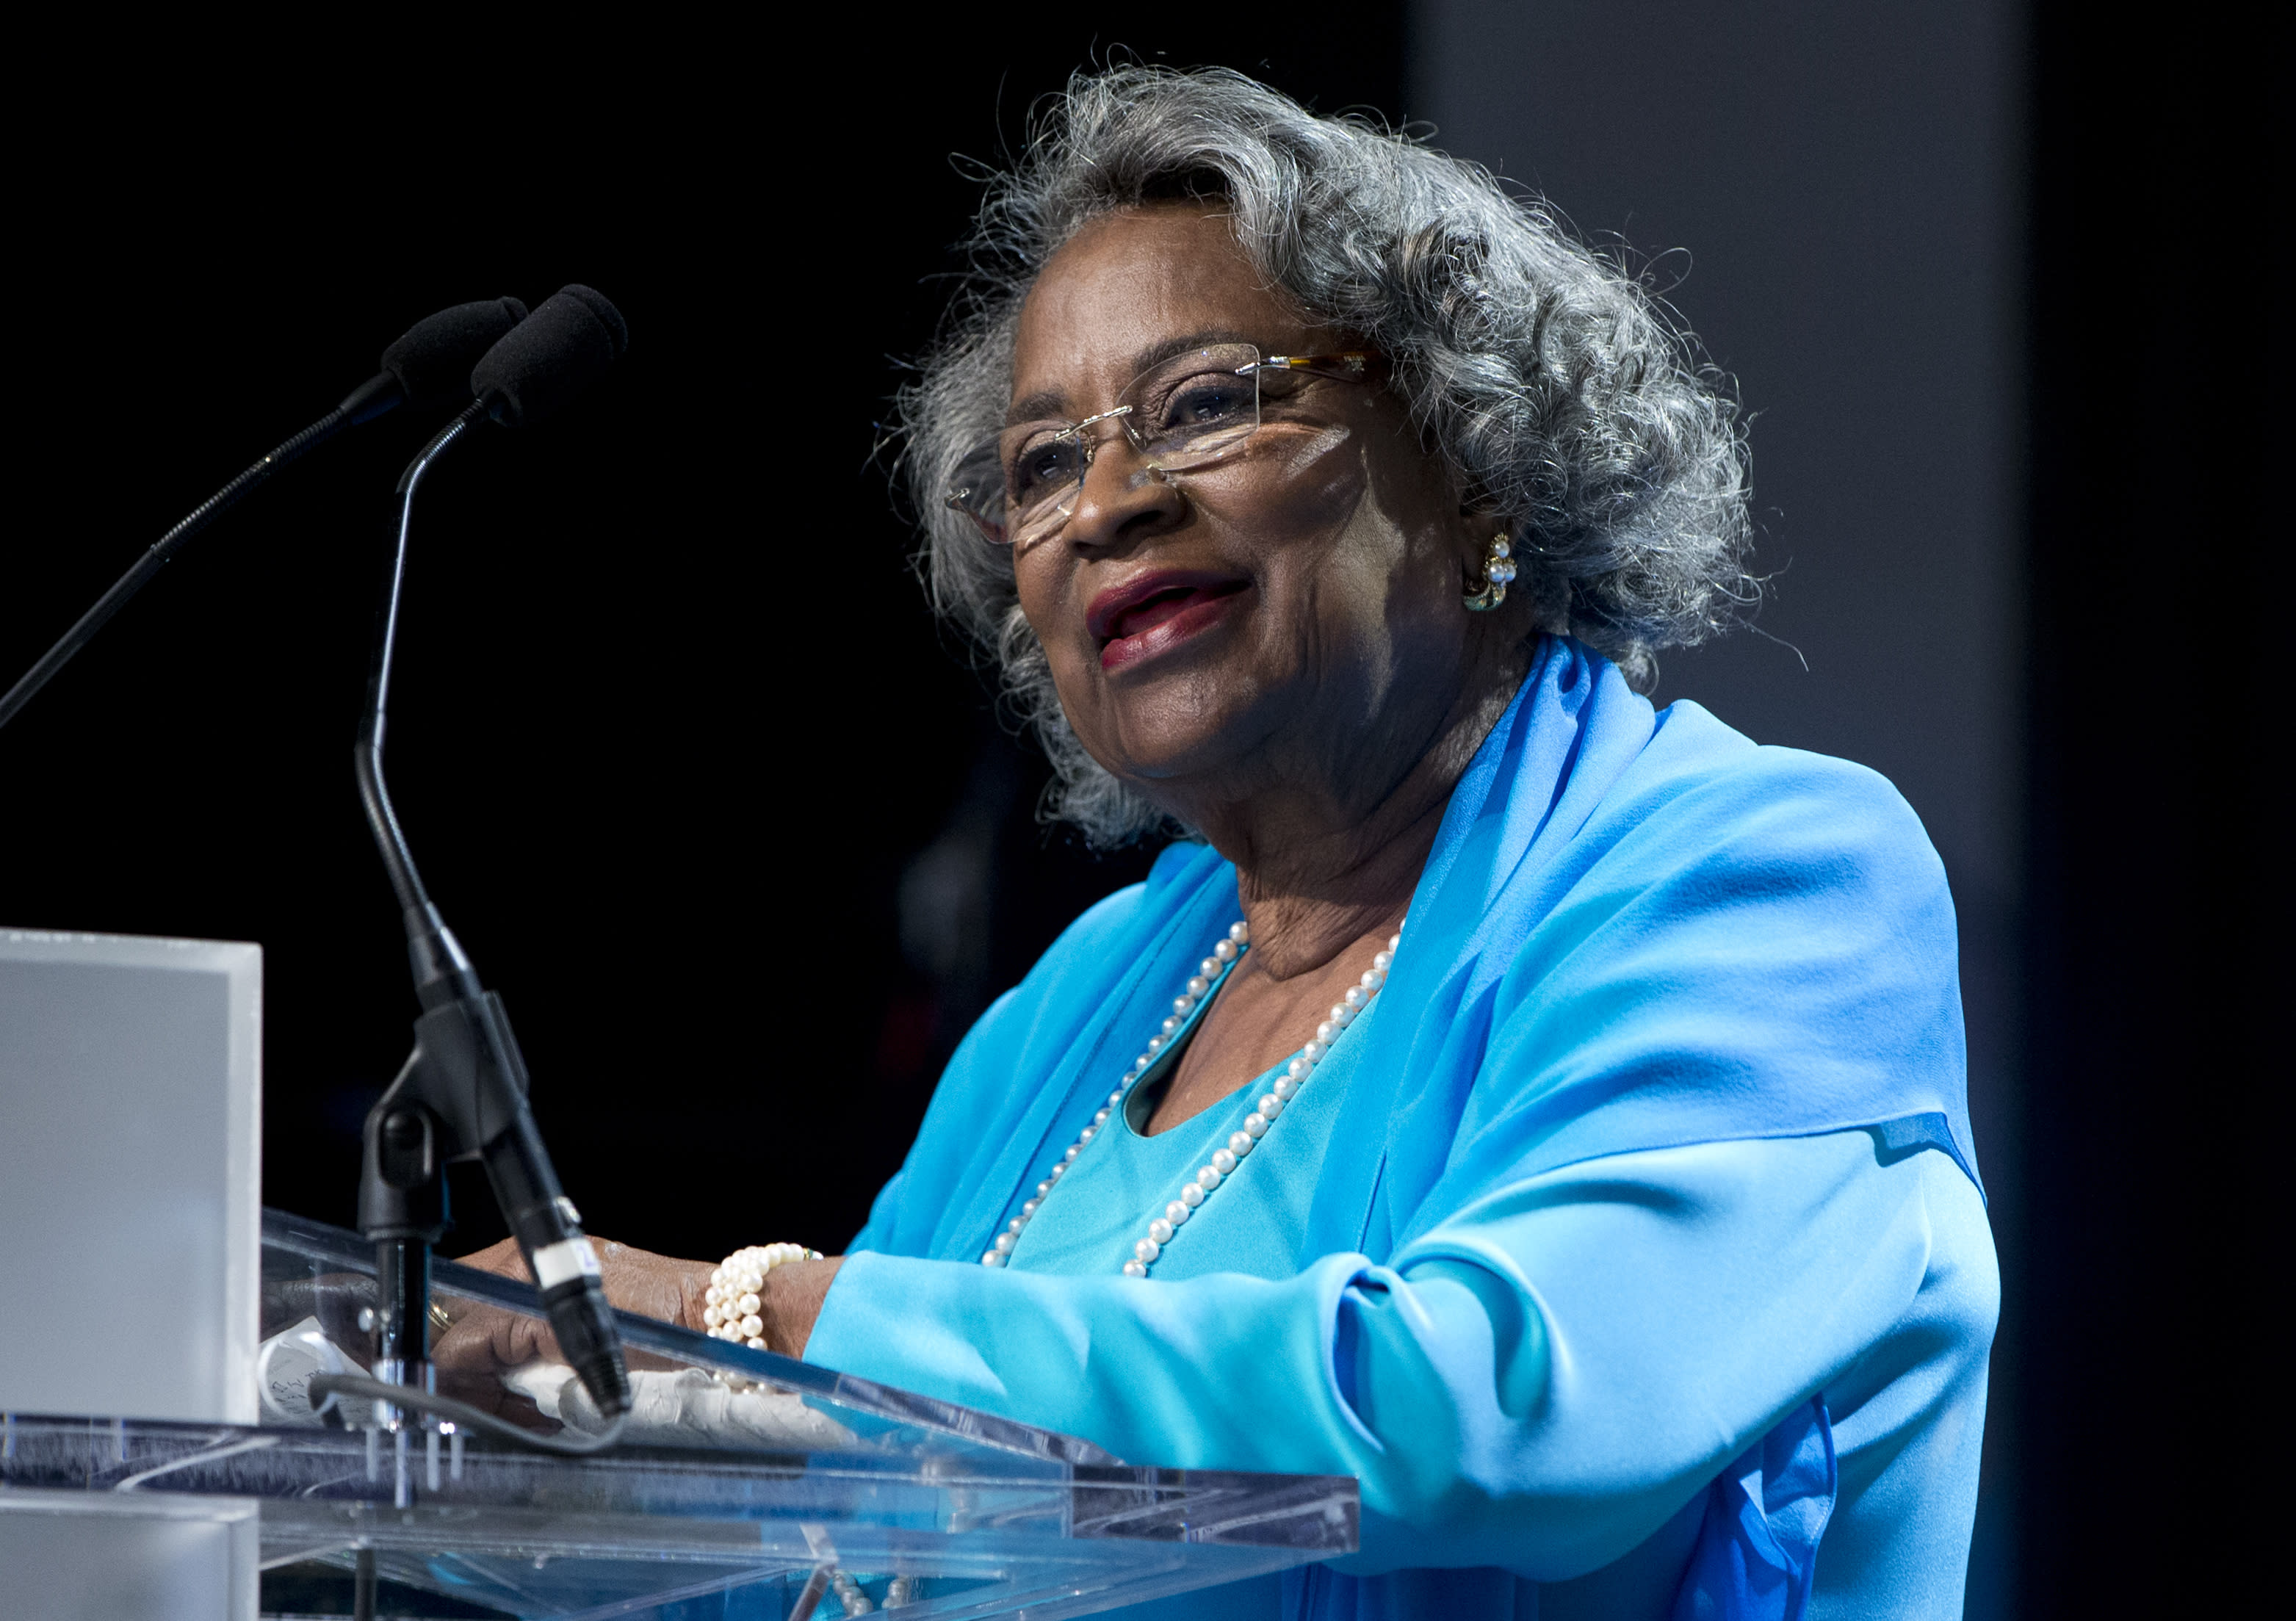 """FILE - In this Saturday, Sept. 19, 2015 file photo, Civil rights activist Juanita Abernathy speaks after receiving the George Thomas """"Mickey"""" Leland Award at the Congressional Black Caucus Foundation's 45th Annual Legislative Conference Phoenix Awards Dinner at the Walter E. Washington Convention Center in Washington. Juanita Abernathy, who wrote the business plan for the 1955 Montgomery Bus Boycott and took other influential steps in helping to build the American civil rights movement, has died. She was 88. Family spokesman James Peterson confirmed Abernathy died Thursday, Sept. 12, 2019 at Piedmont Hospital in Atlanta following complications from a stroke. (AP Photo/Carolyn Kaster, File)"""